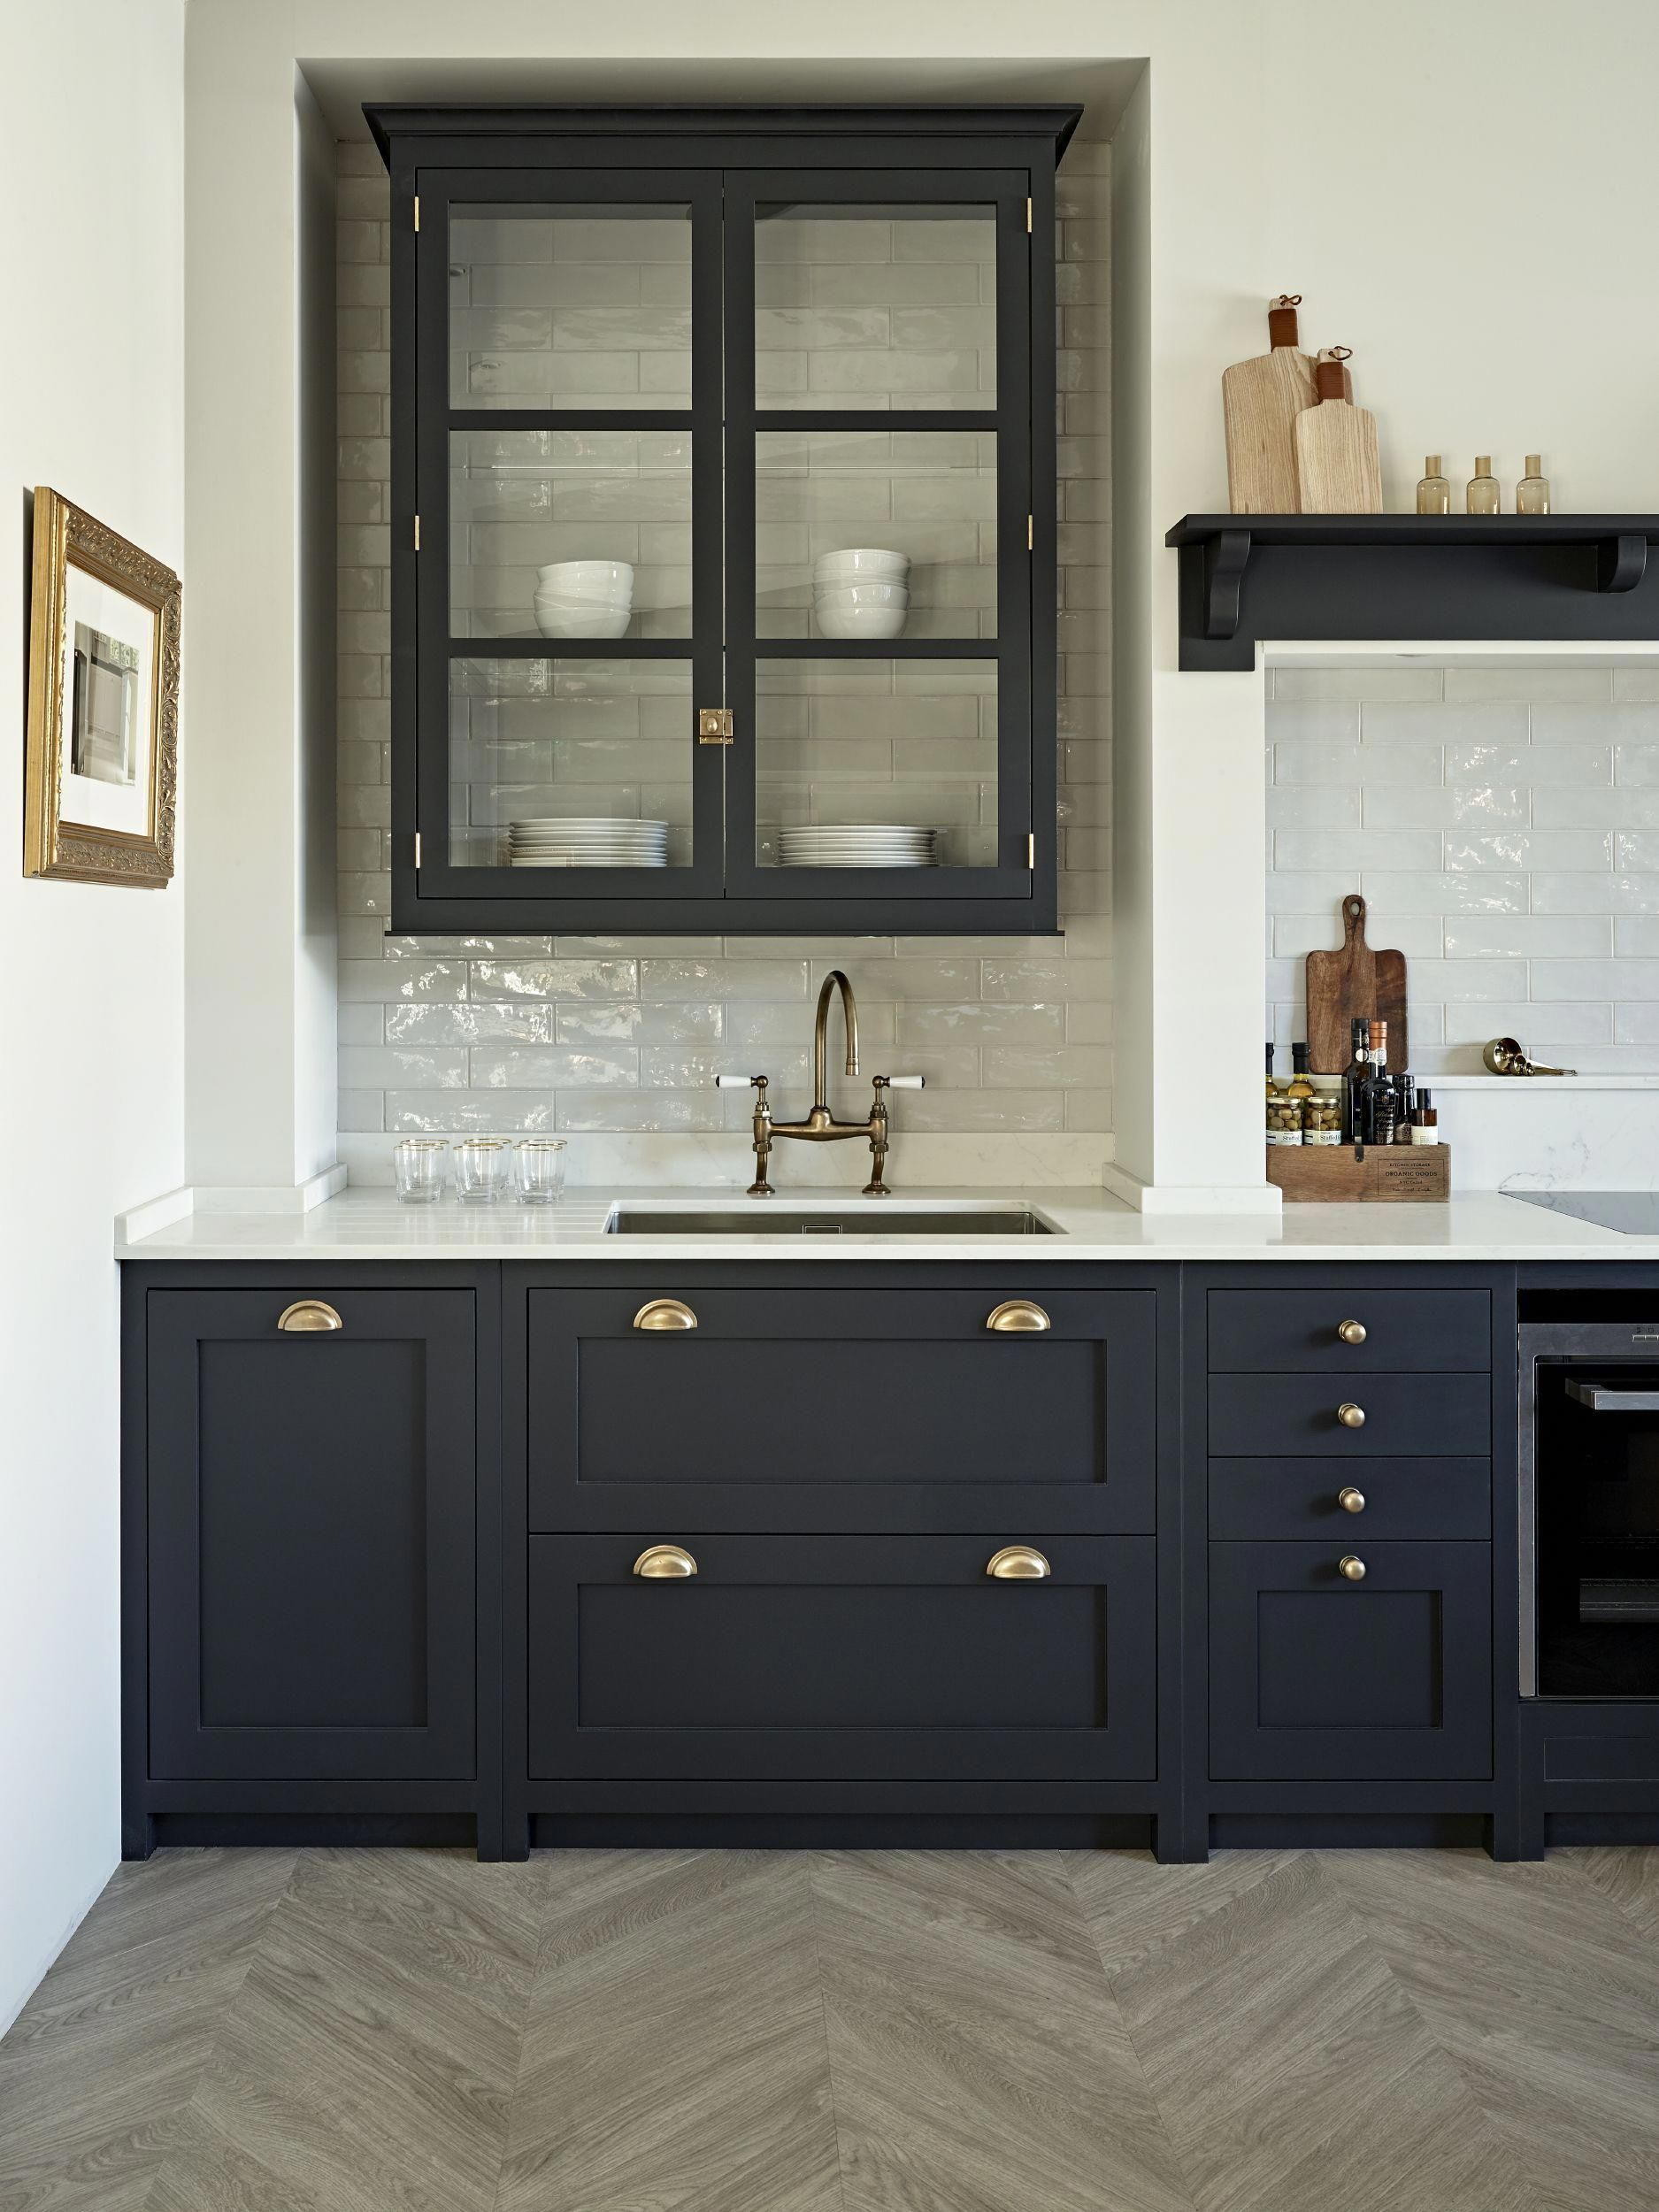 Why Furniture So Expensive Refferal 2323315934 In 2020 Kitchen Remodel Design Modern Kitchen Design Kitchen Cabinet Design